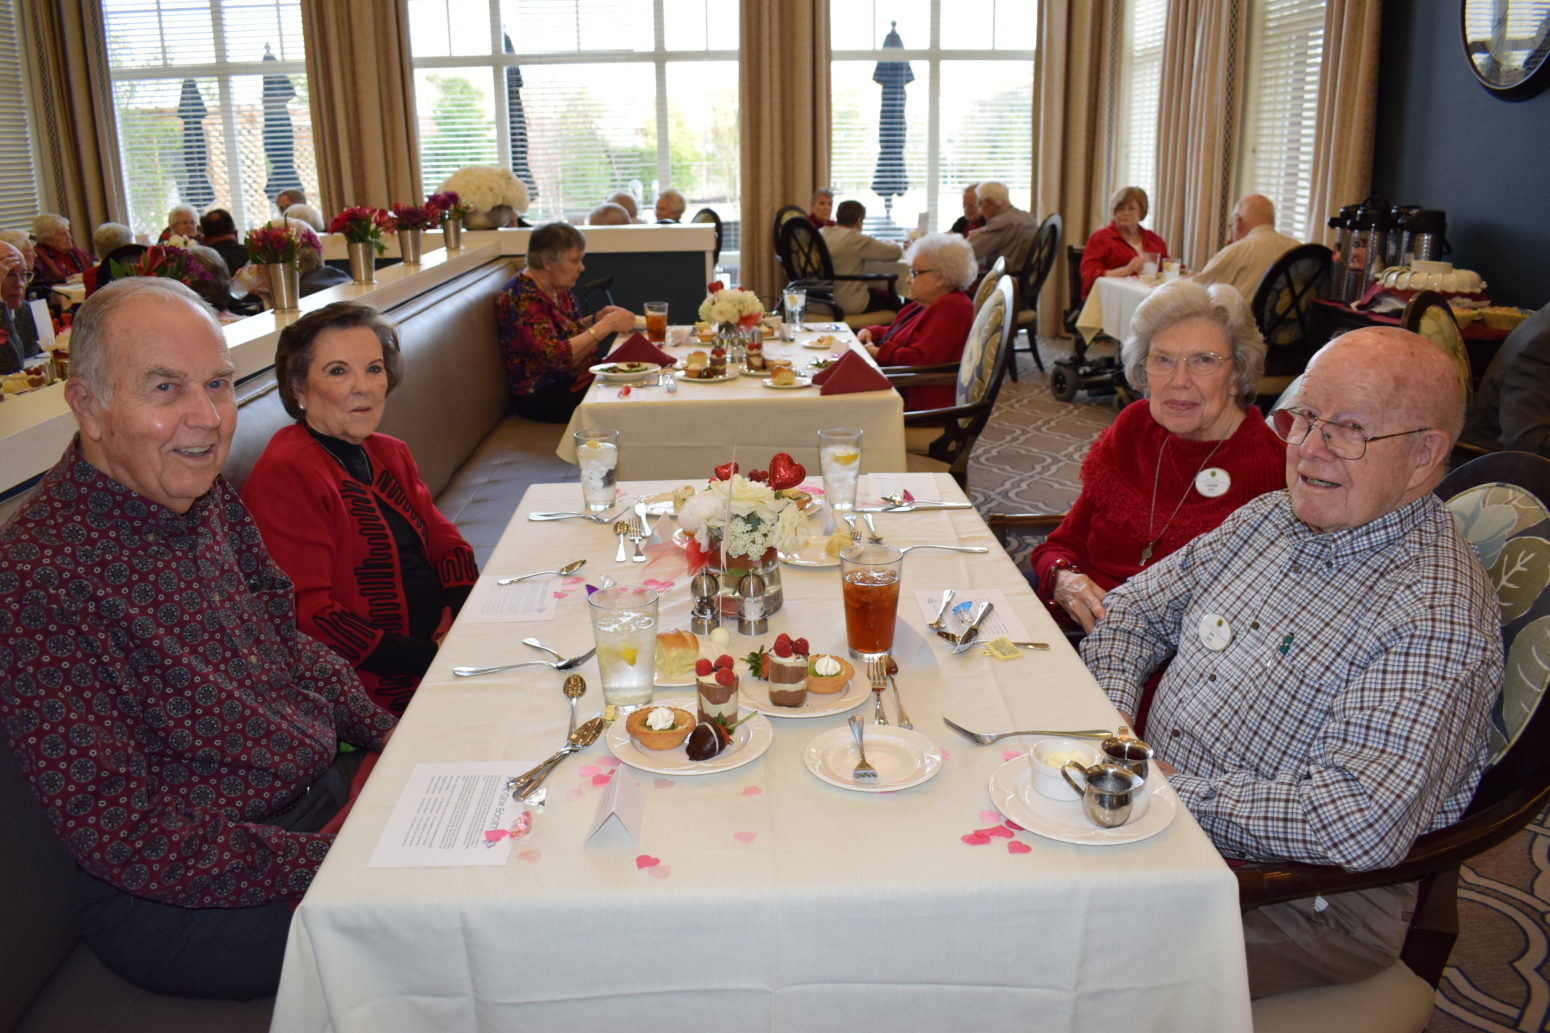 Arbor Oaks residents at a dining table